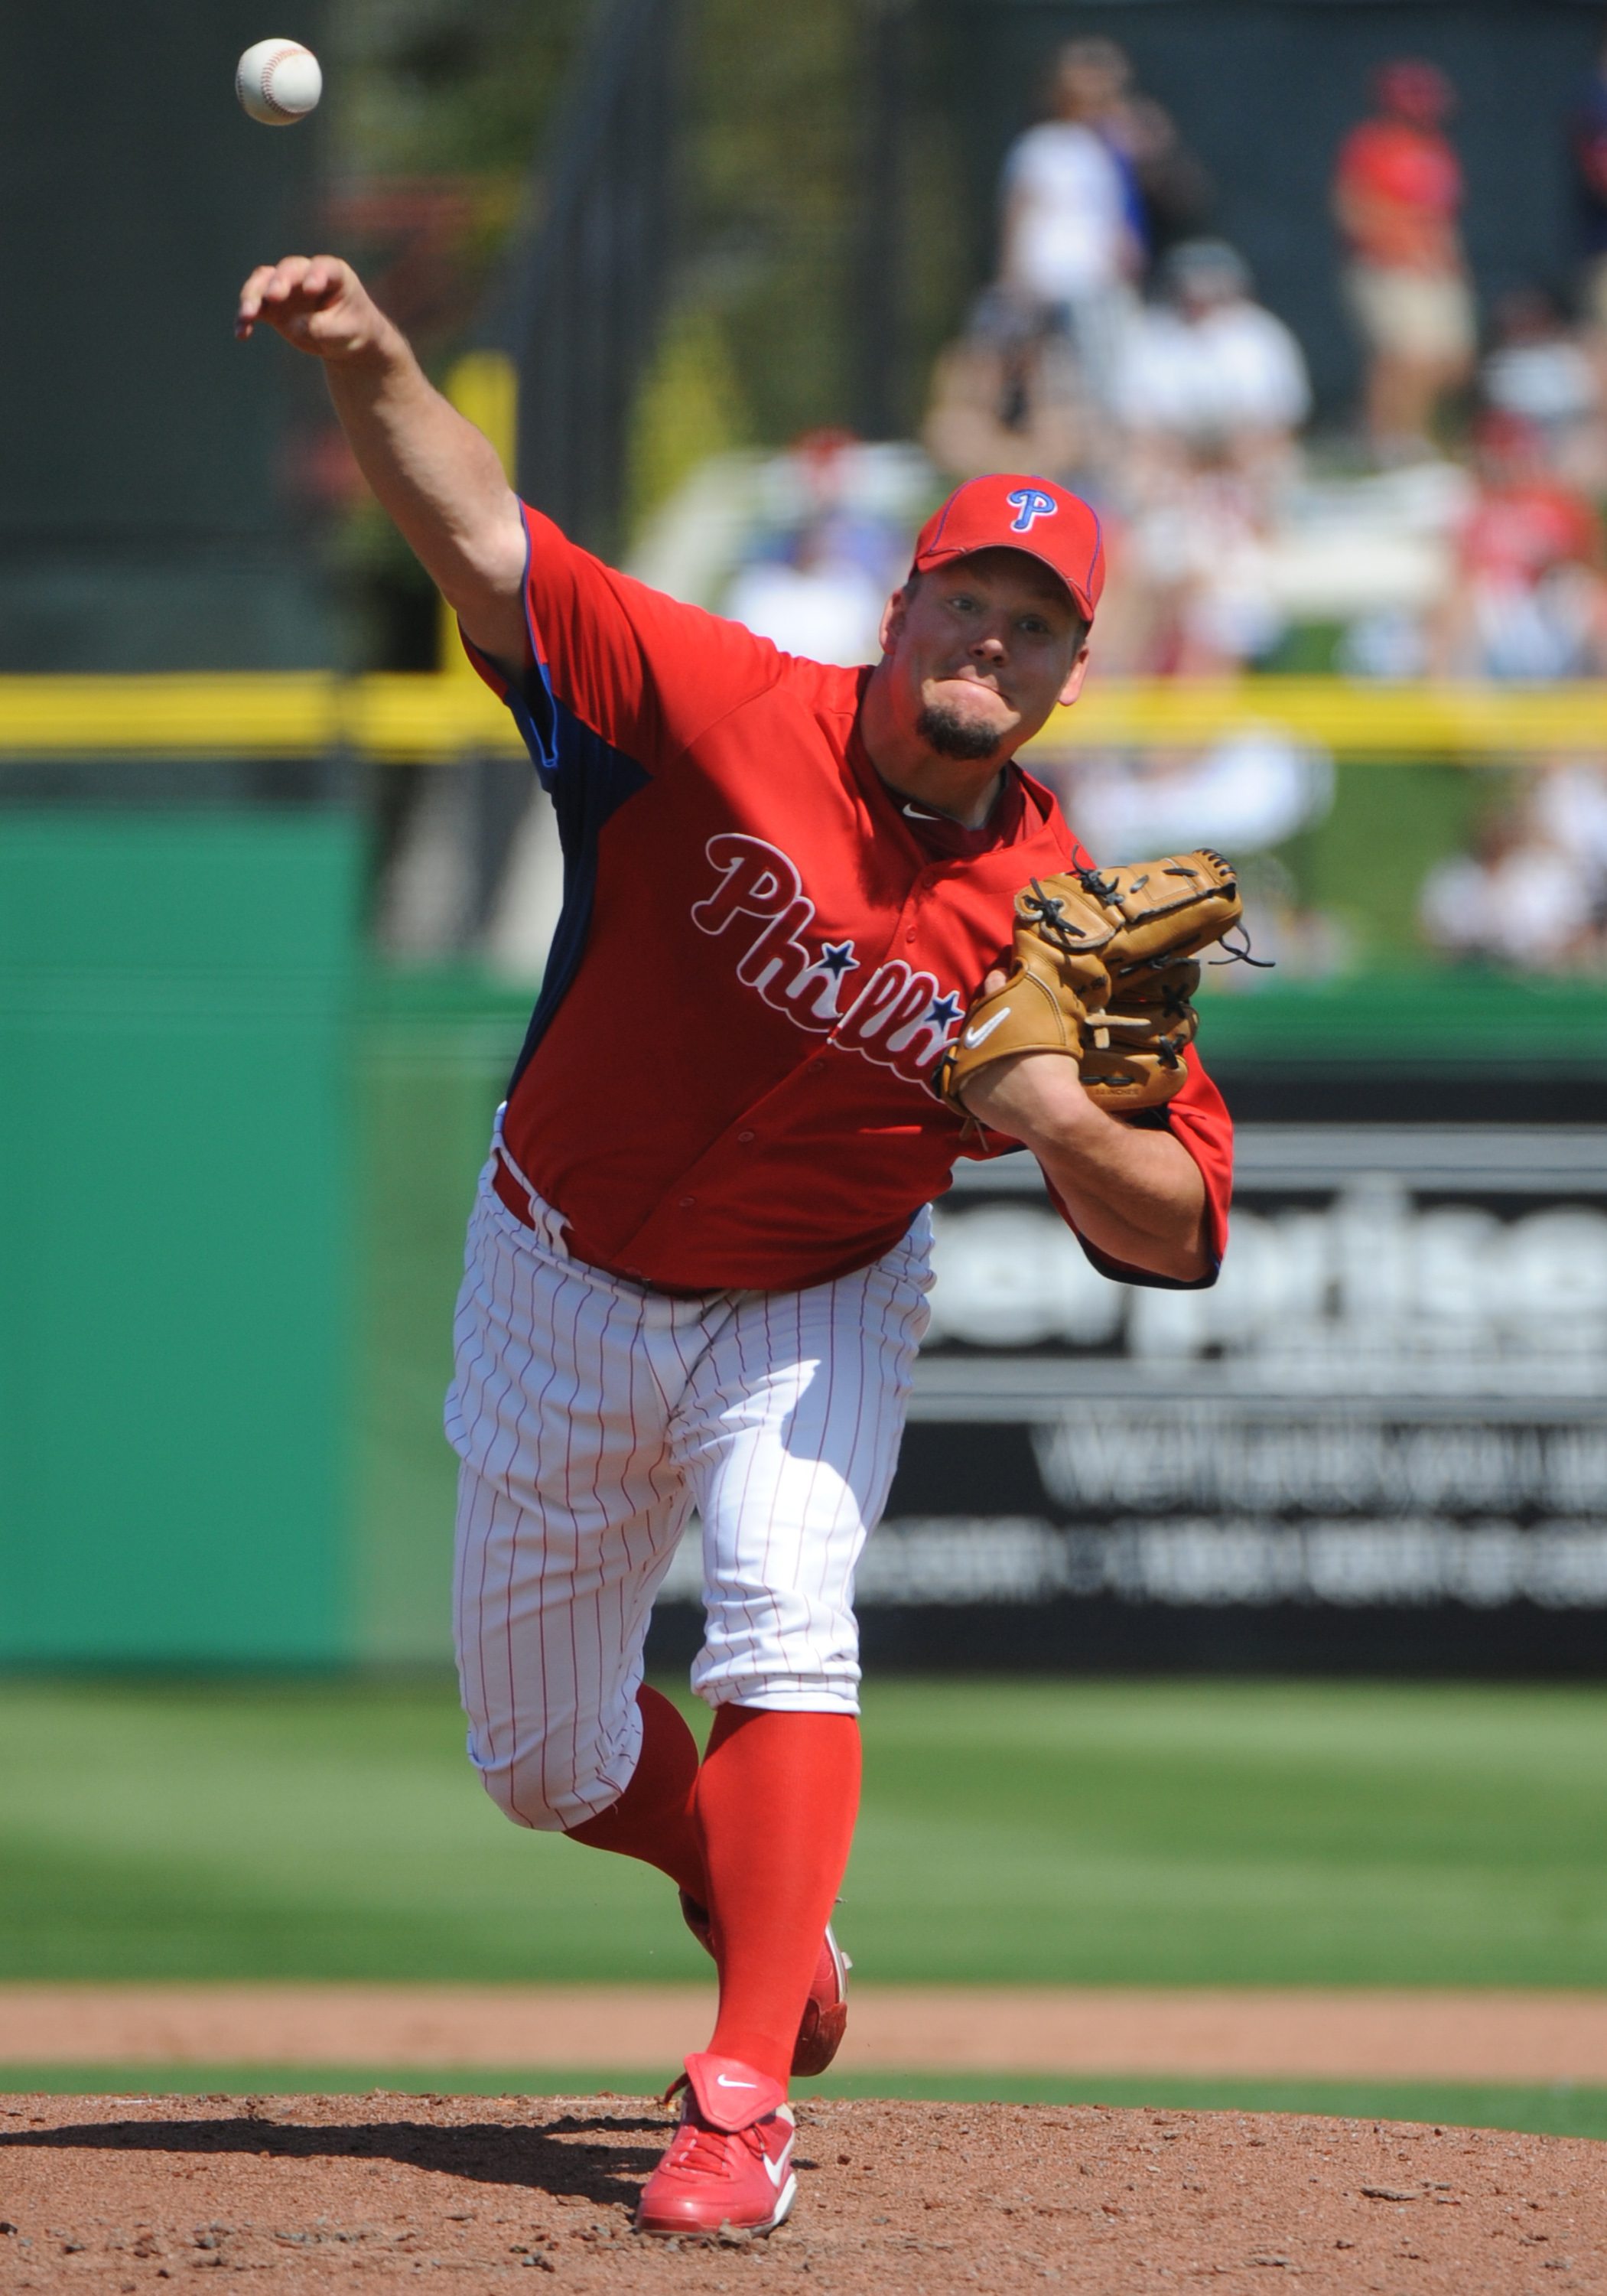 CLEARWATER, FL - FEBRUARY 27:  Pitcher Joe Blanton #56 of the  Philadelphia Phillies starts against the New York Yankees February 27, 2011 at Bright House Field in Clearwater, Florida.  (Photo by Al Messerschmidt/Getty Images)